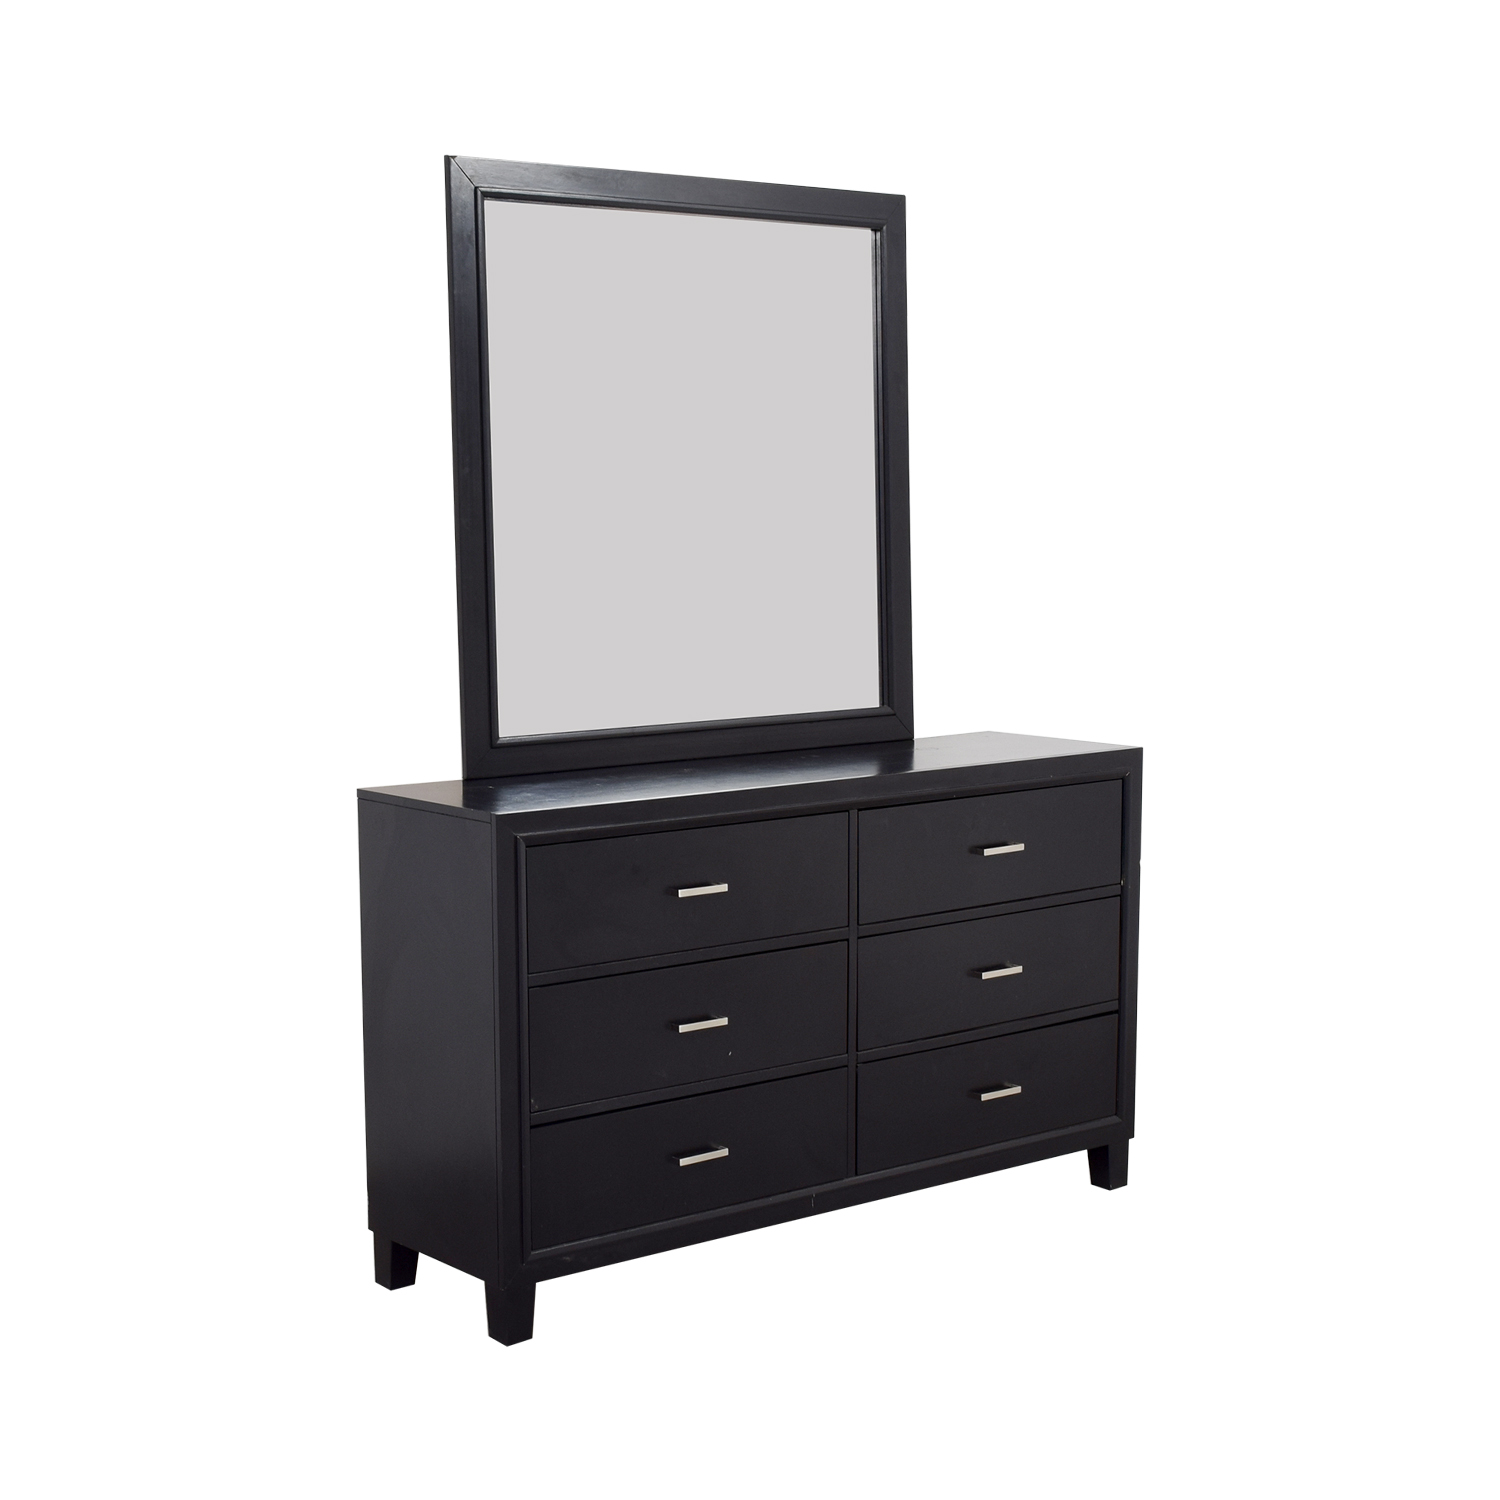 Six-Drawer Dresser with Mirror coupon